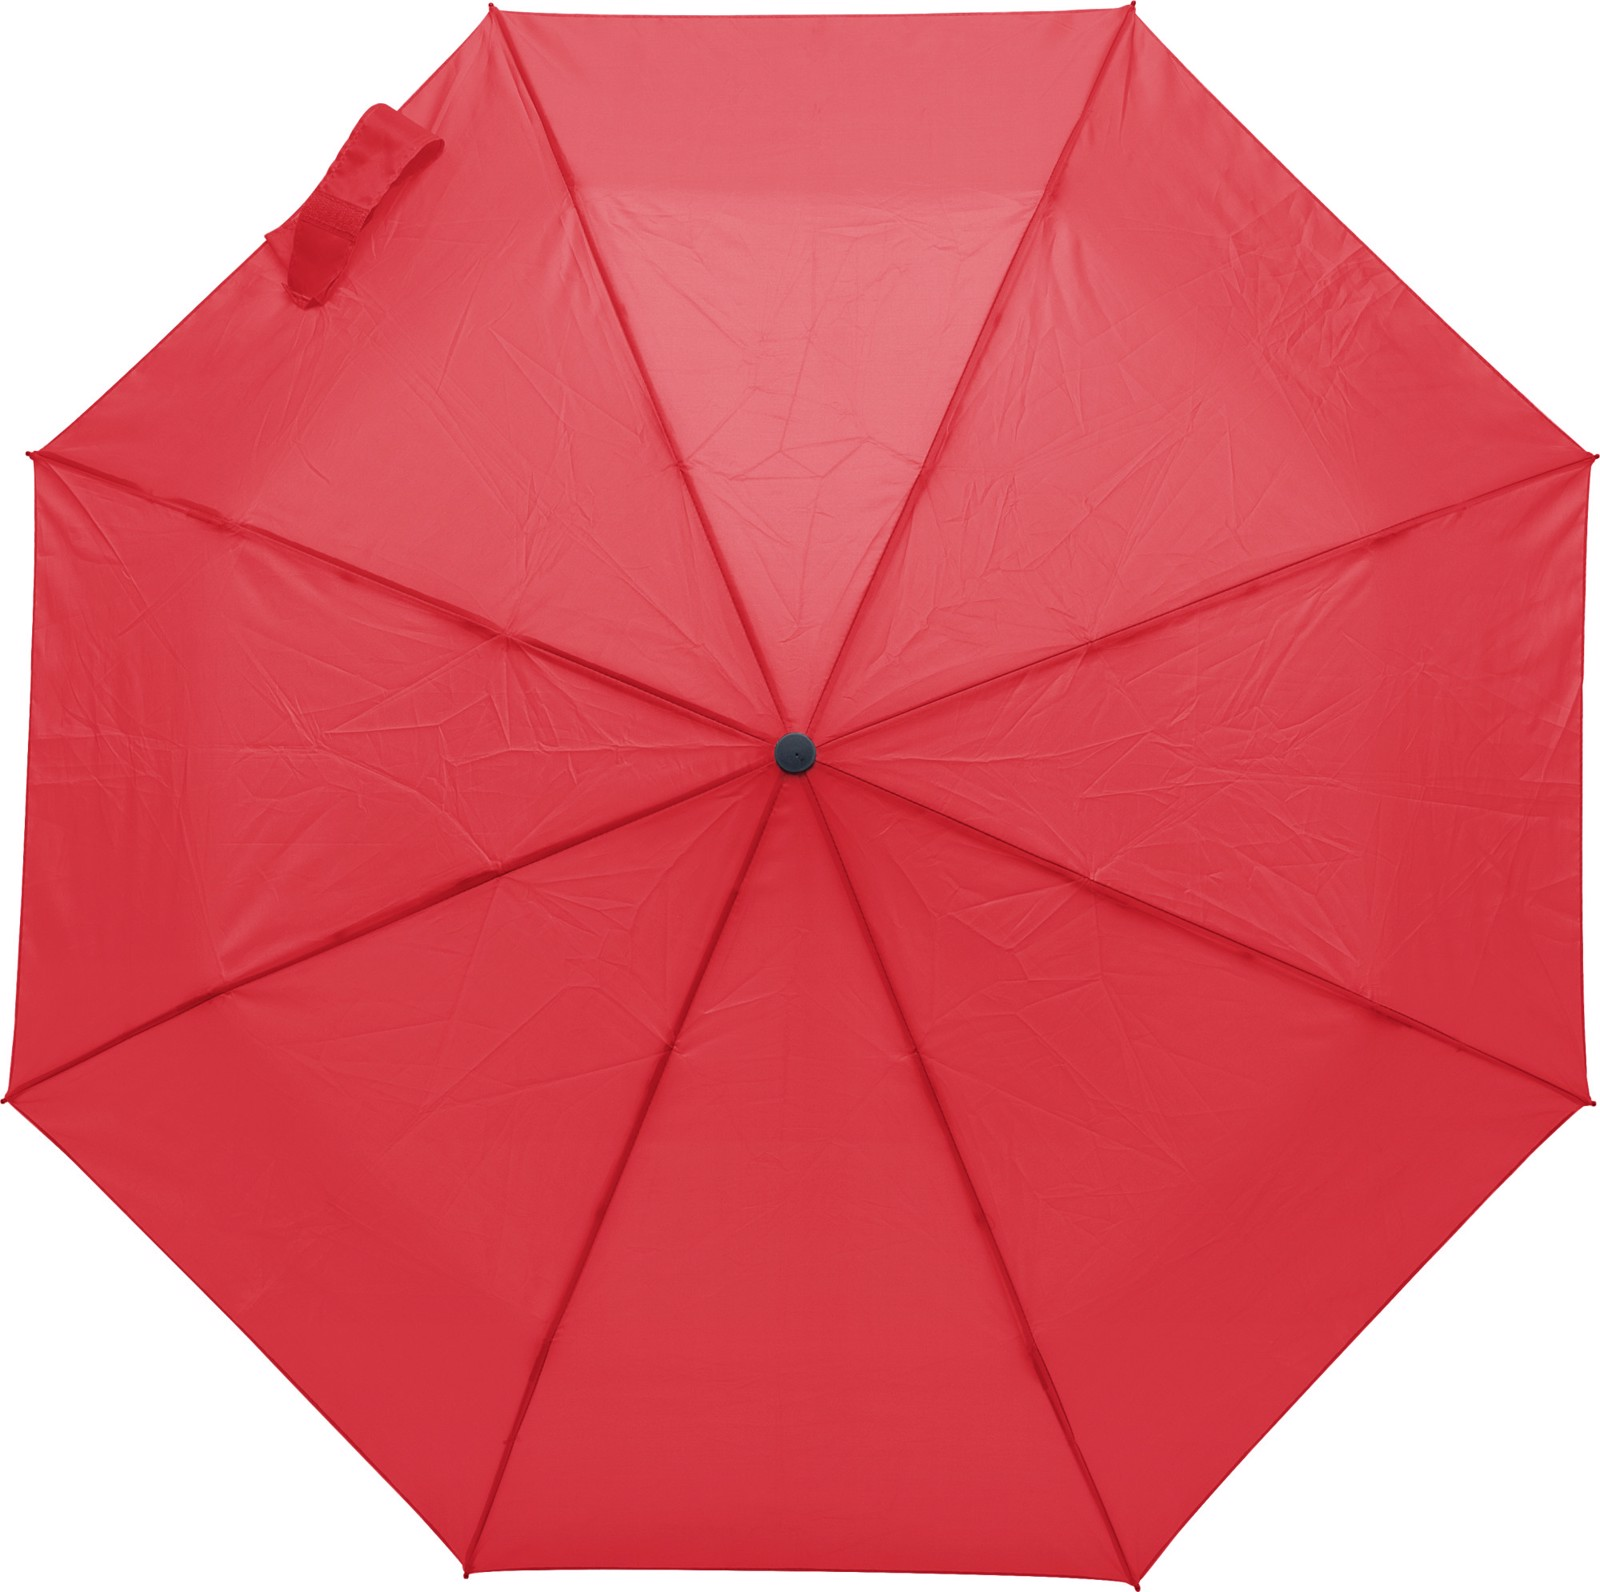 Polyester (170T) umbrella - Red